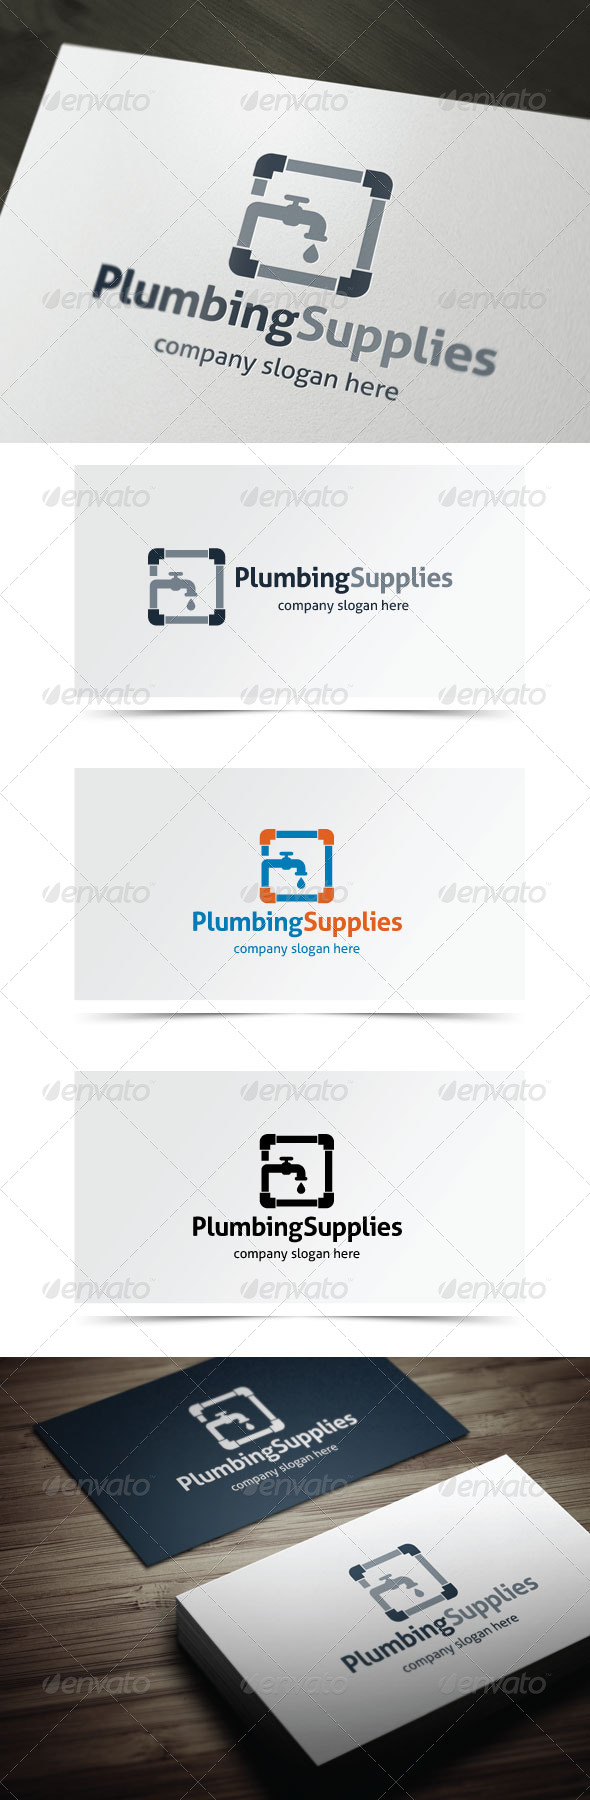 Plumbing Supplies Graphicriver